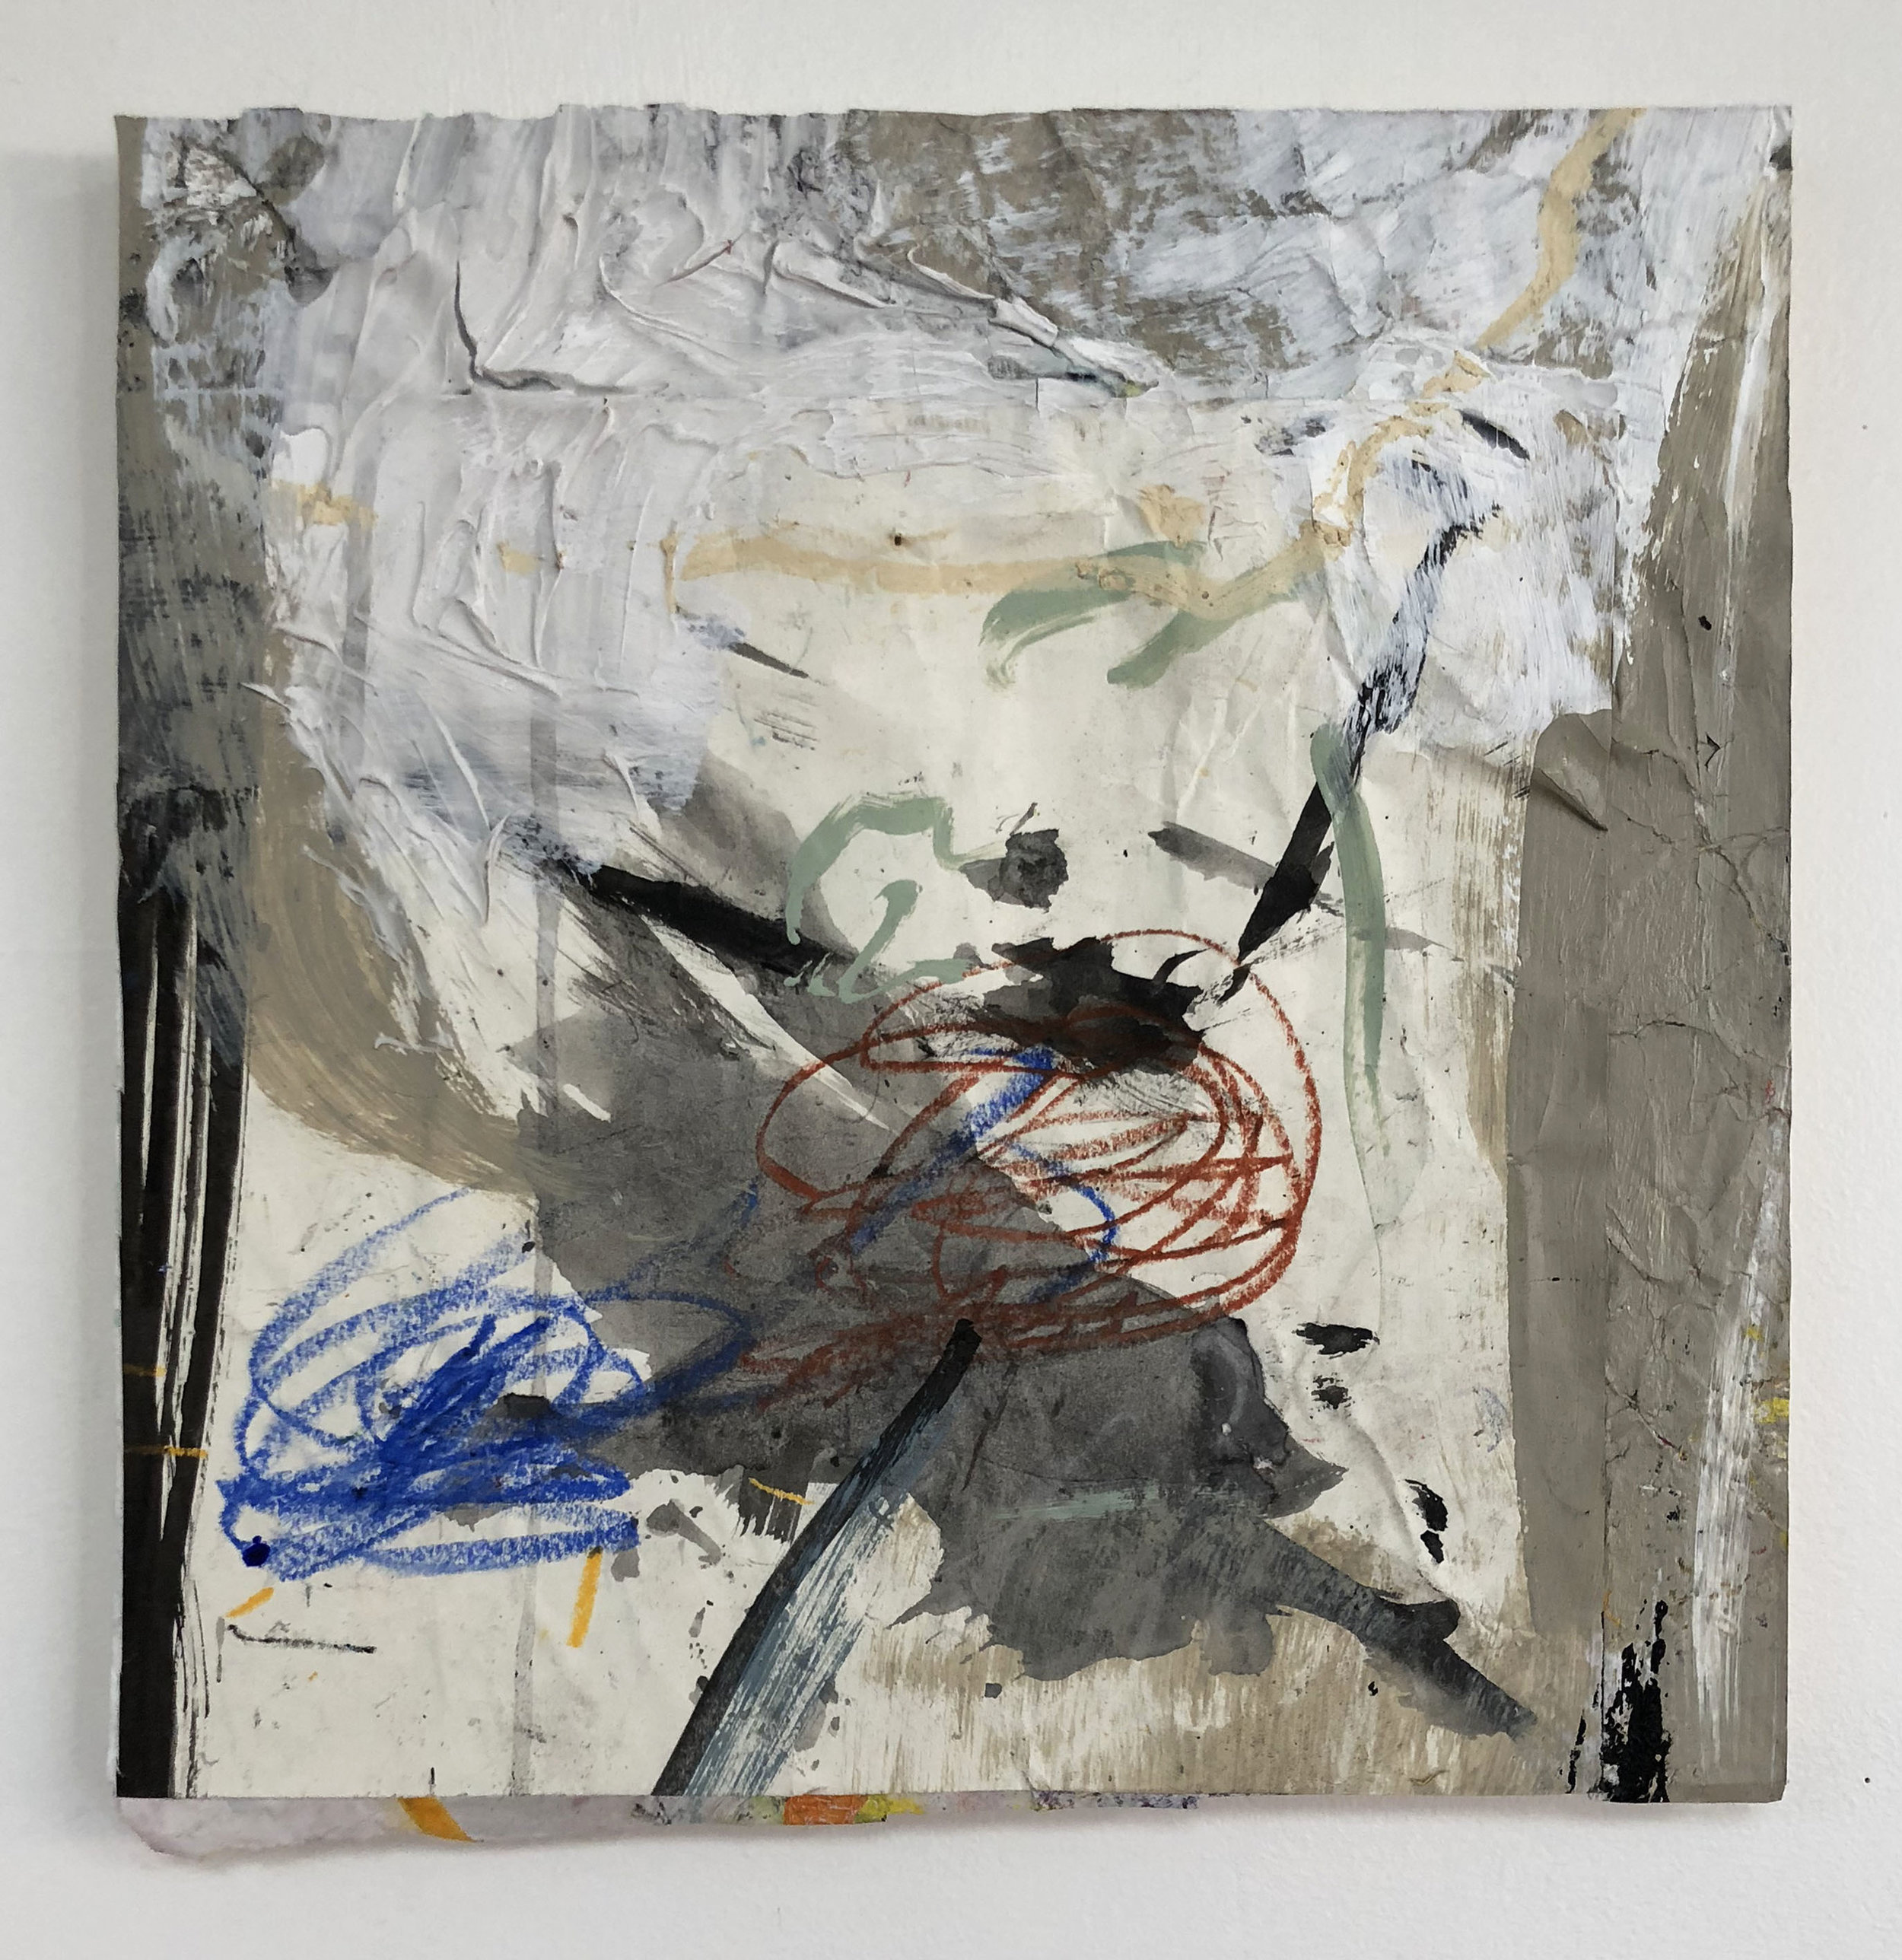 Appropriated Marks Discussing Directions,  2016-18, Collage, charcoal, acrylic, oil, ink on panel